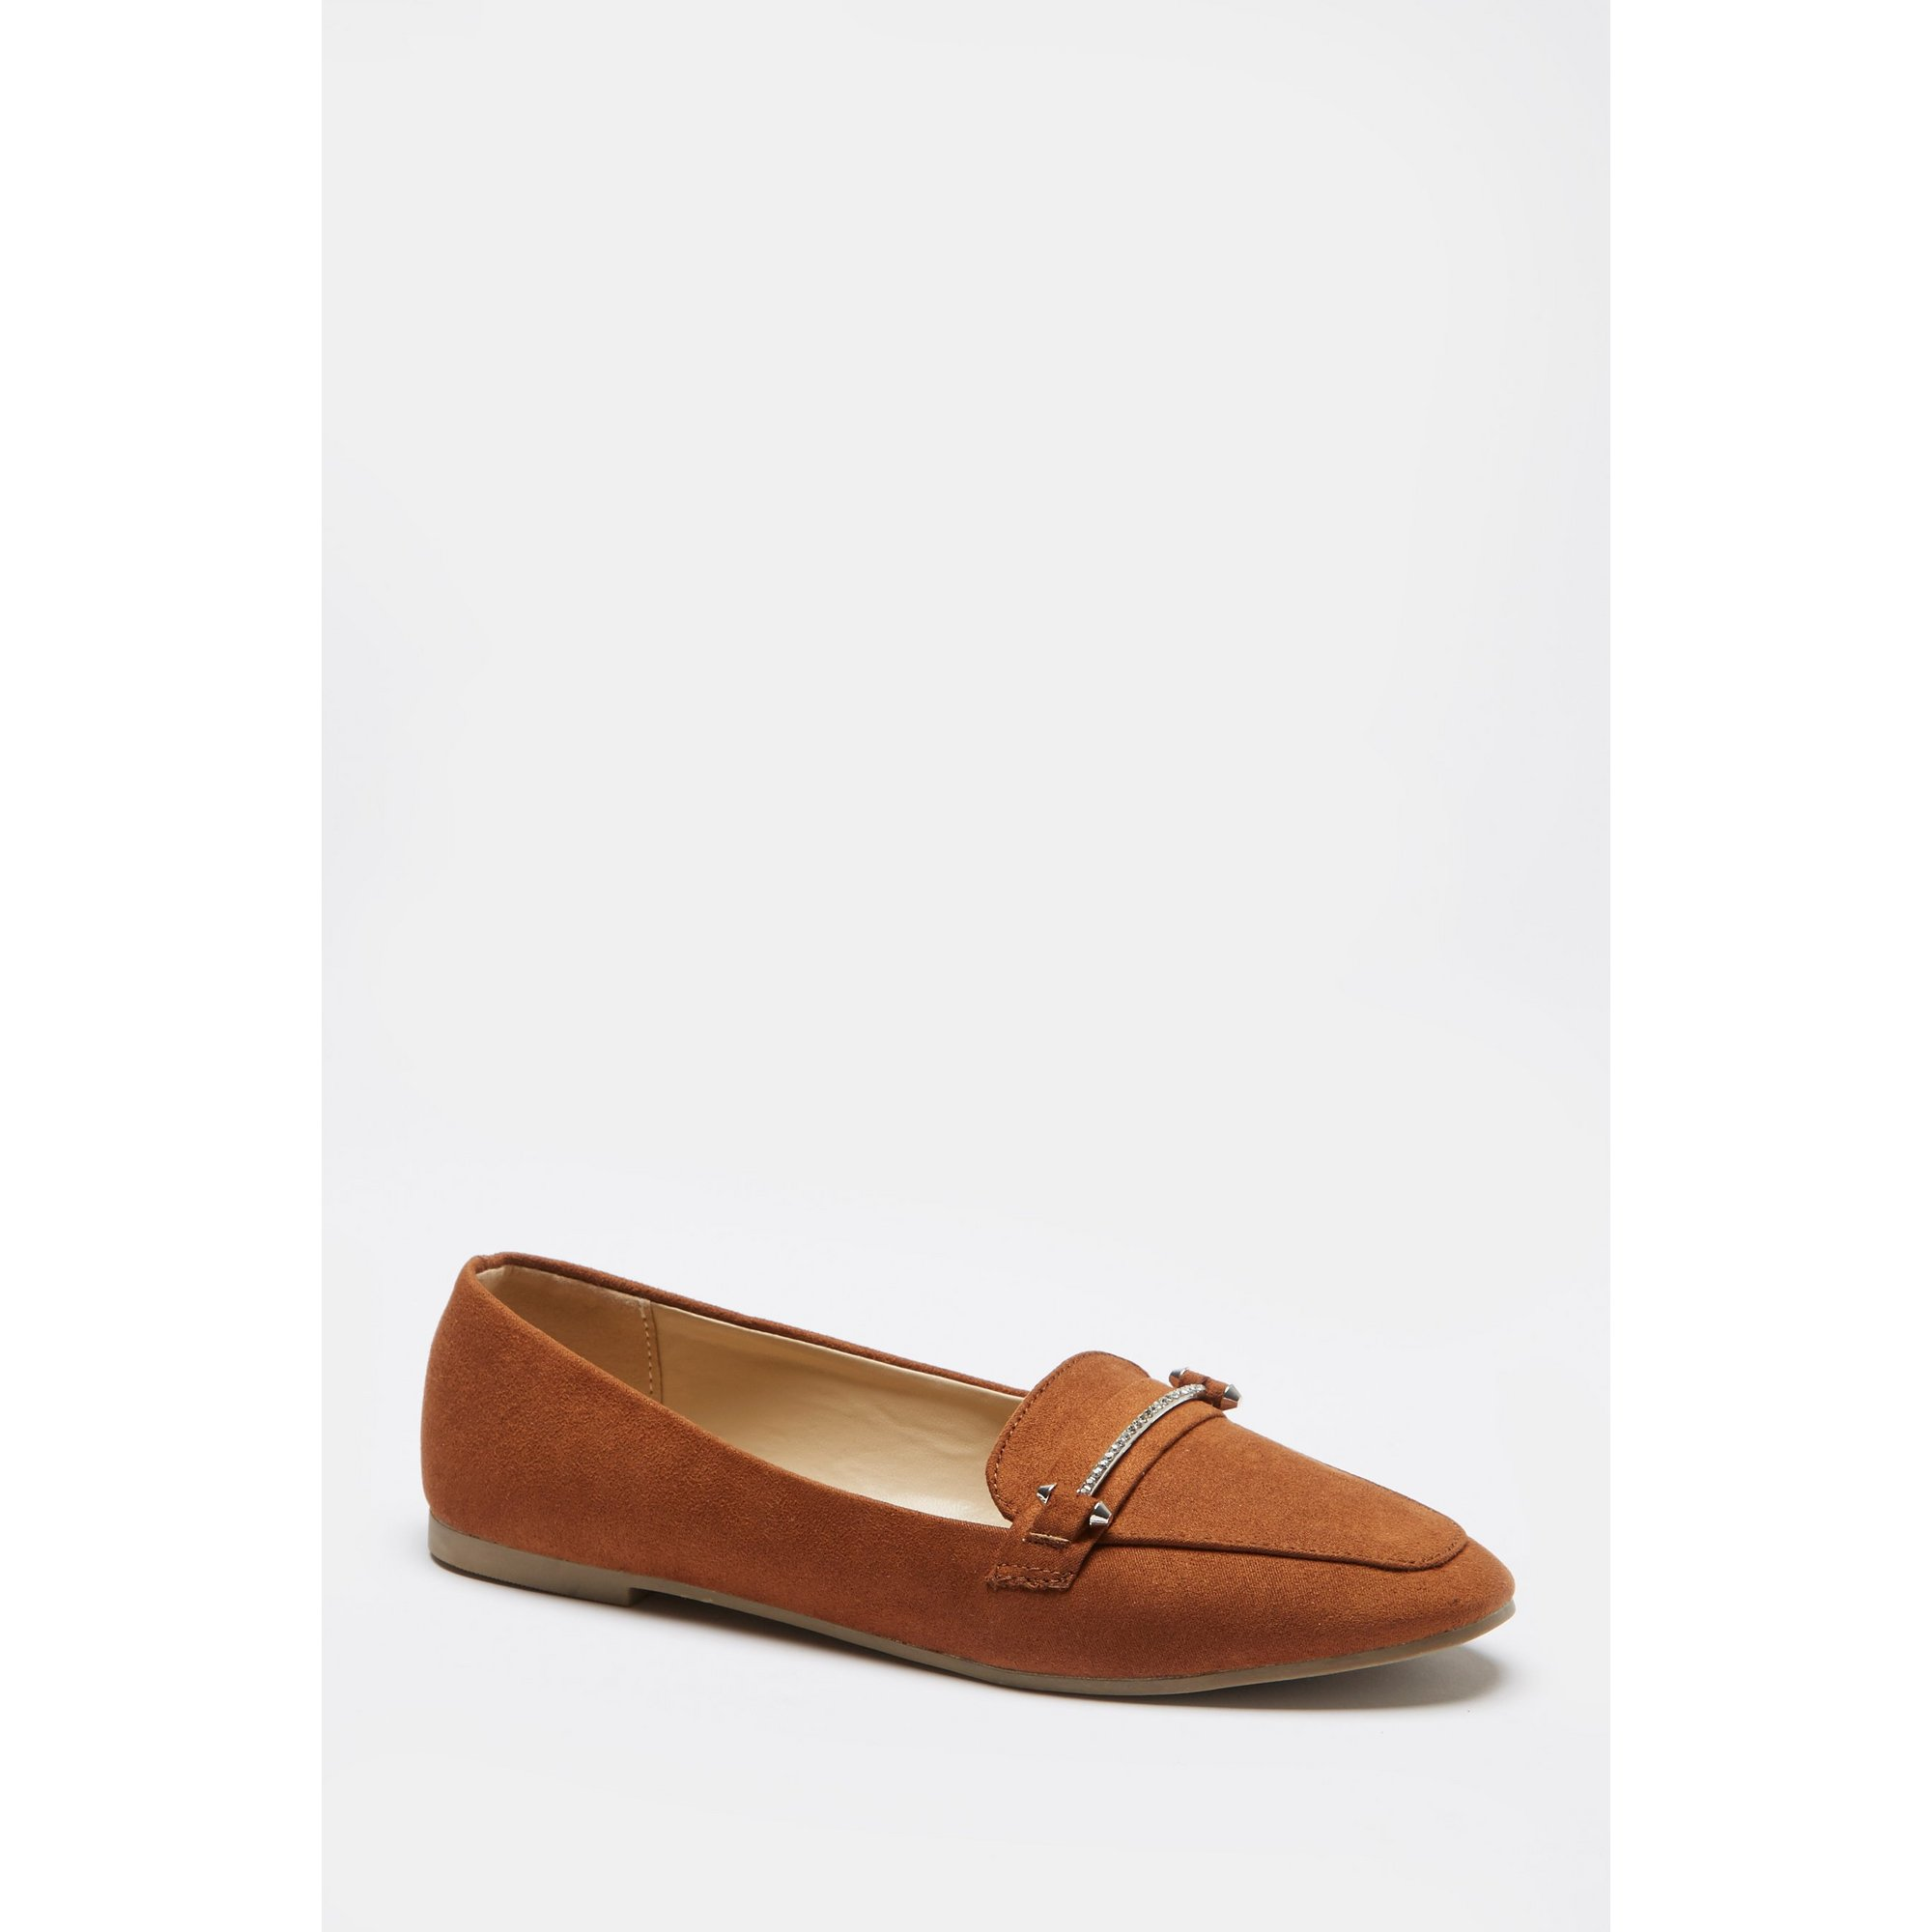 Image of Bling Trim Loafer Shoes